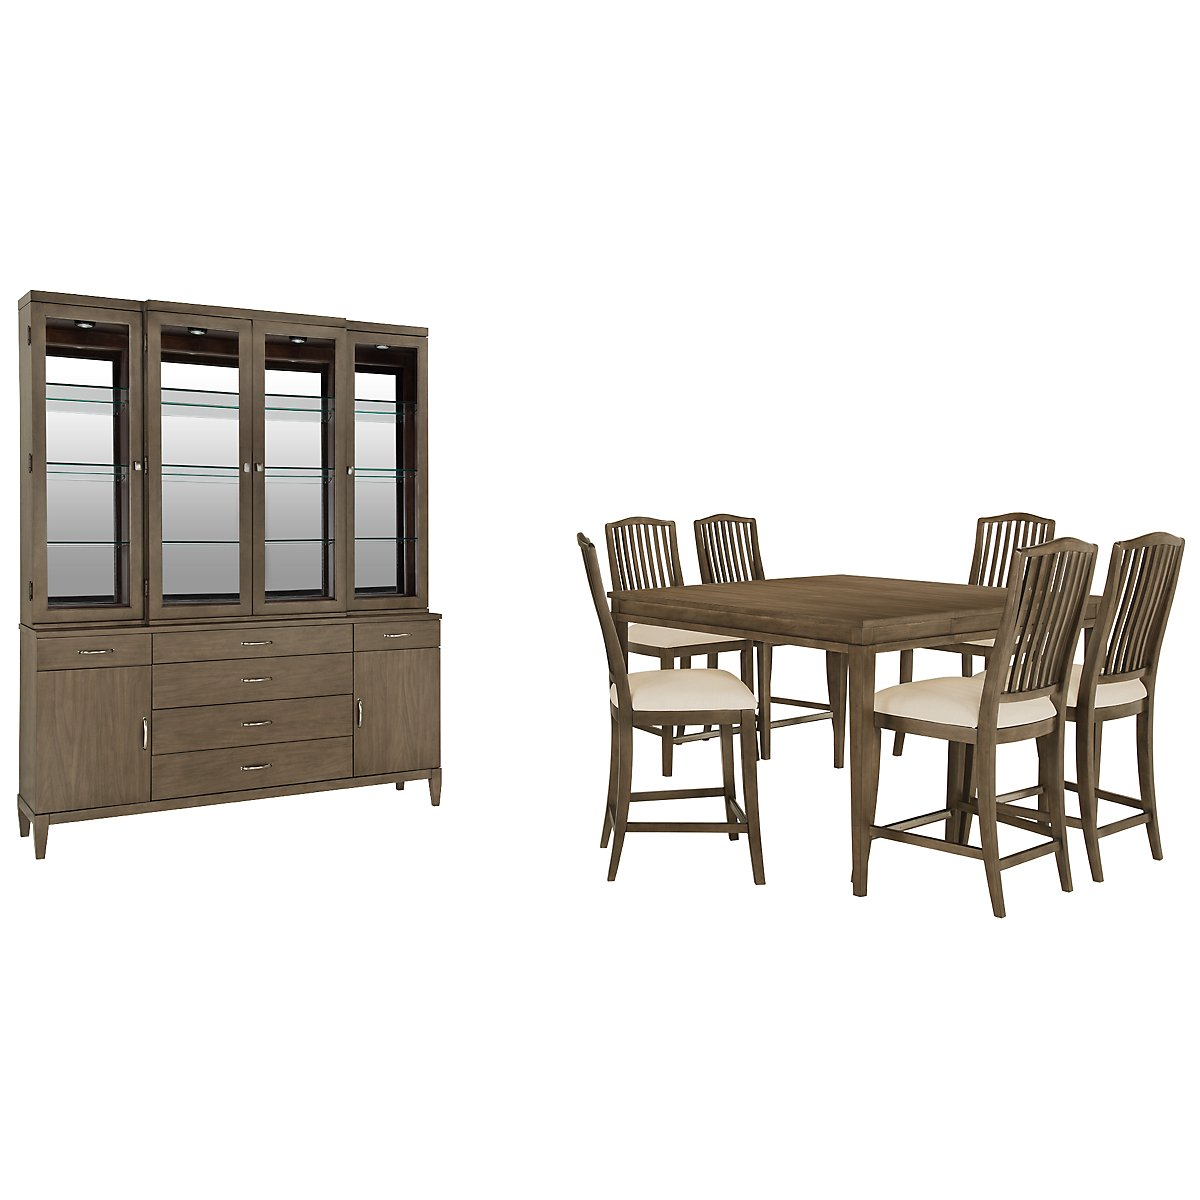 Preston Gray Rectangular High Dining Room